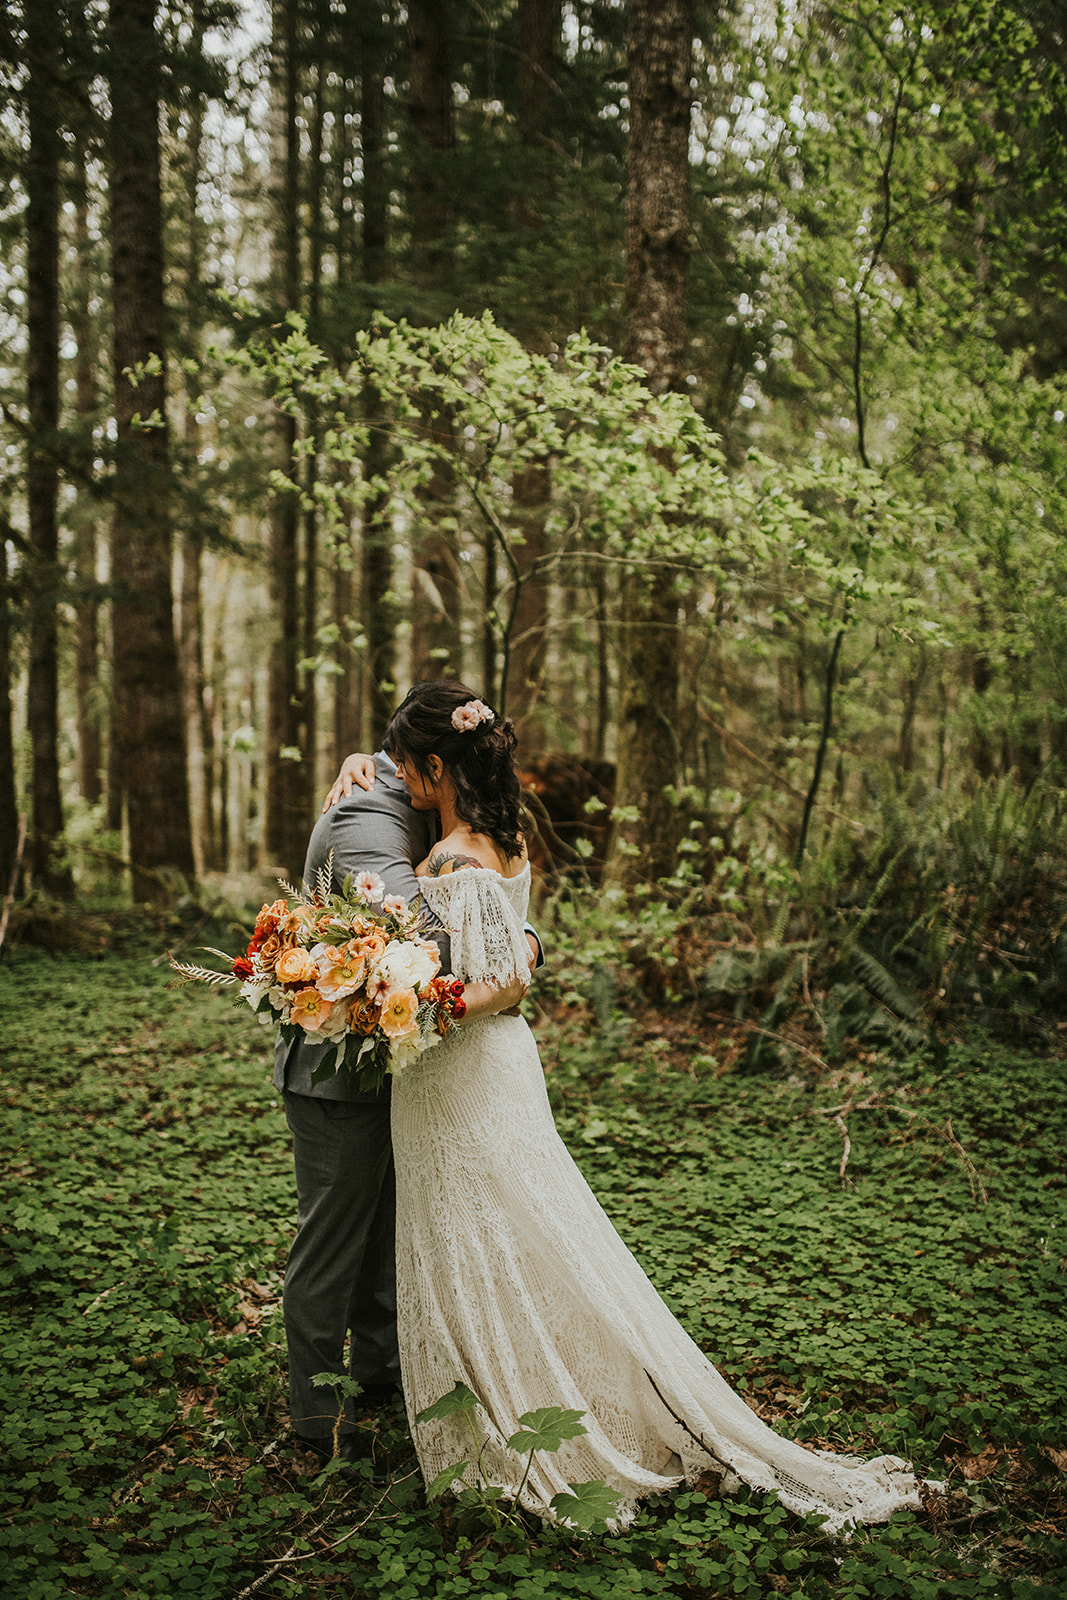 Adventure Elopement in Mt. Rainier National Park | Michael and Breanna | Rosemary & Pine Photography